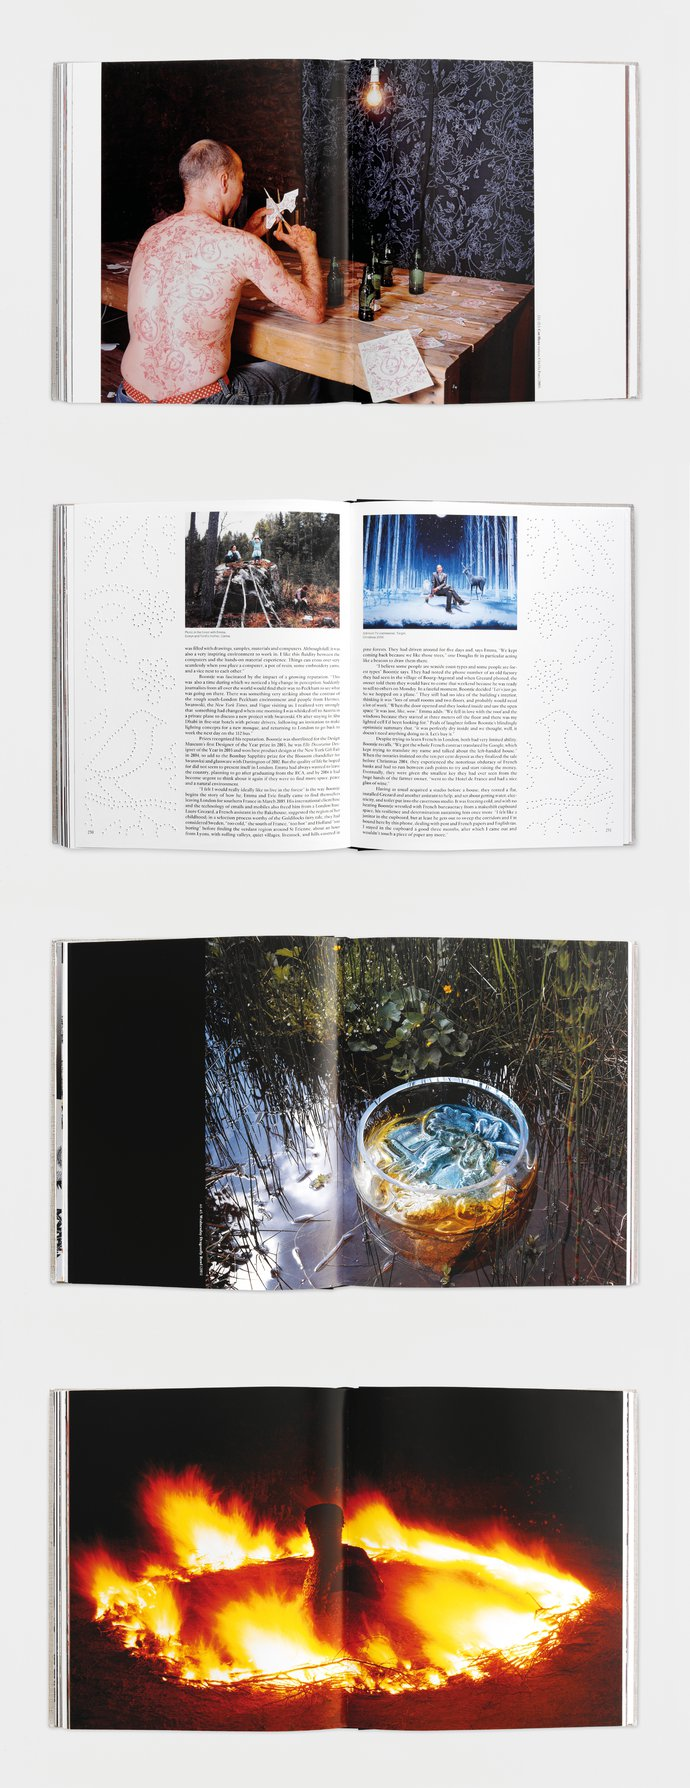 Rizzoli New York – Tord Boontje, 2007 (Publication), image 5